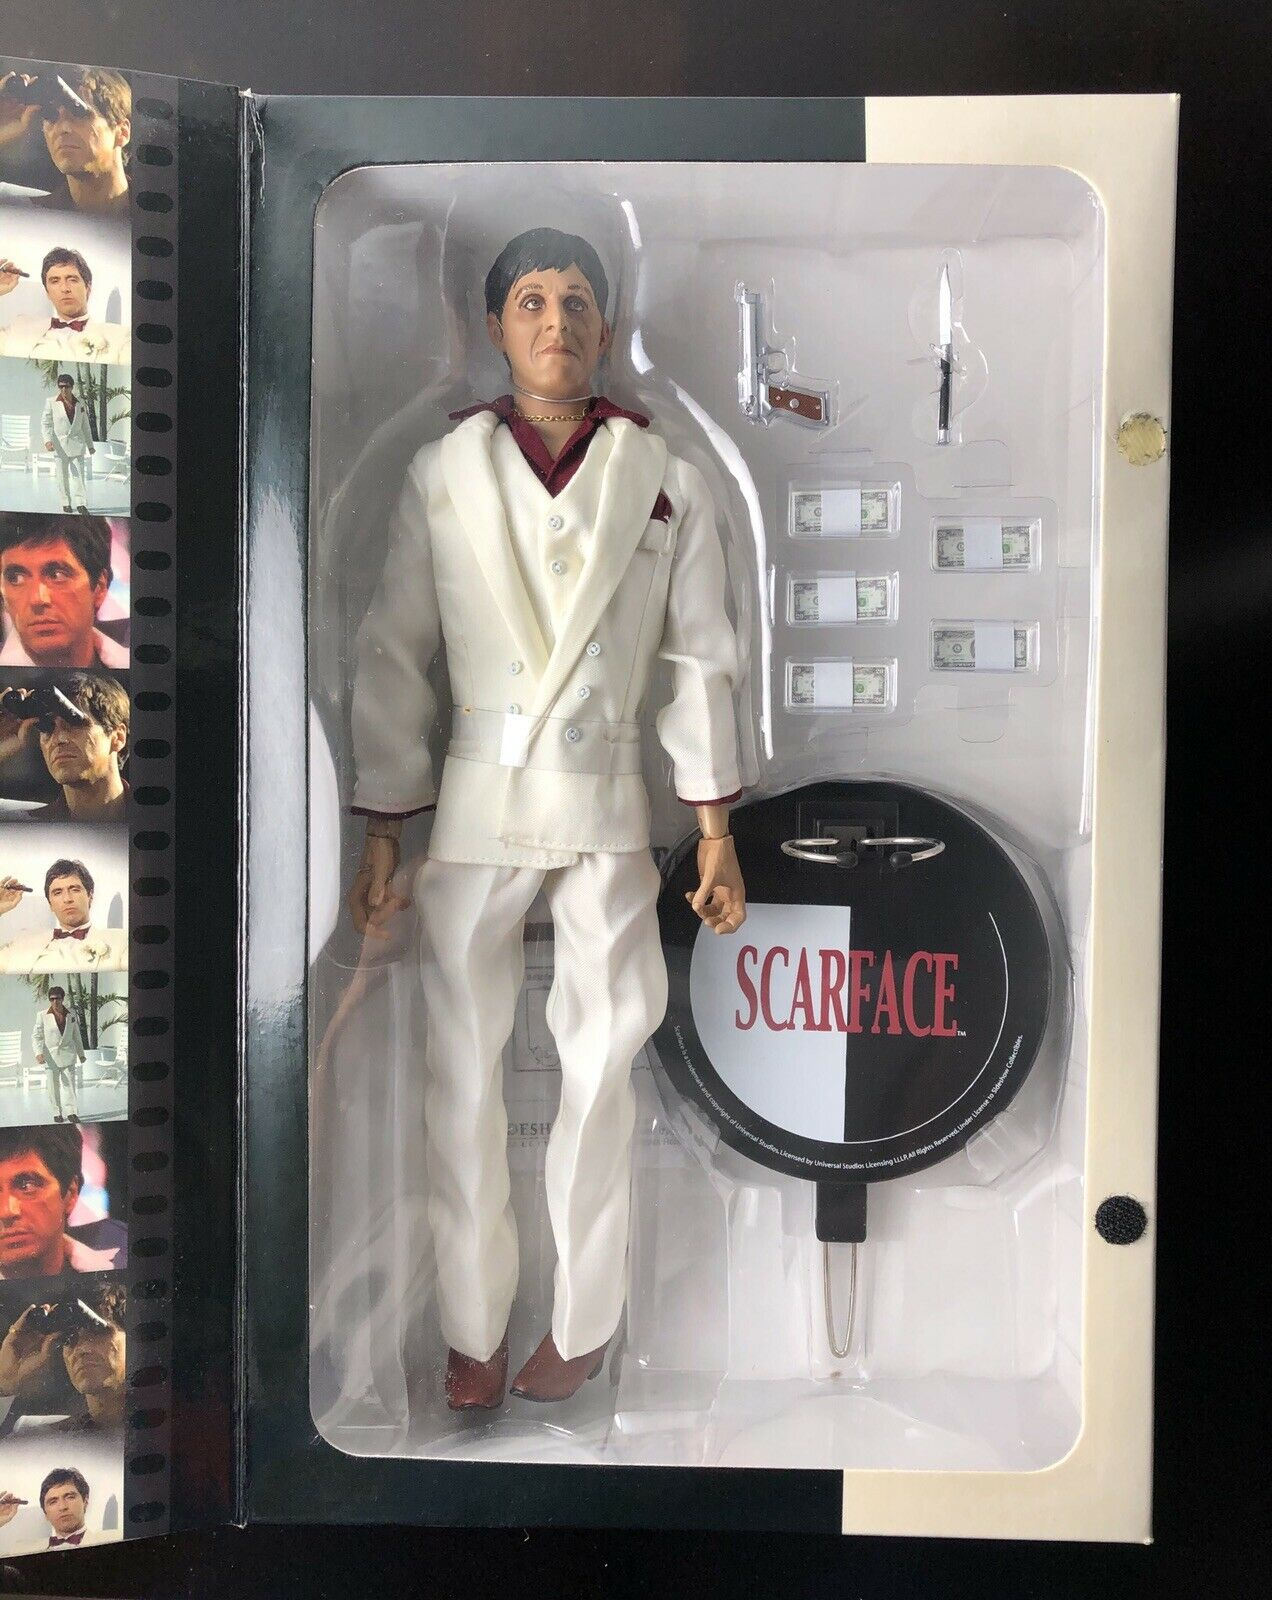 "Al Pacino Scarface 12"" Sideshow Talking Action Figure Rare"